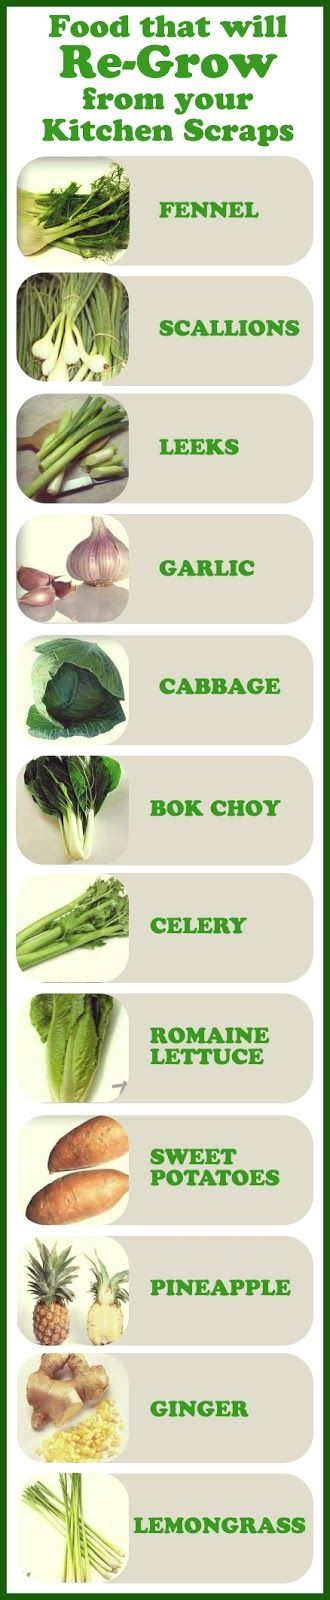 Food that will Re-Grow from your Kitchen Scraps